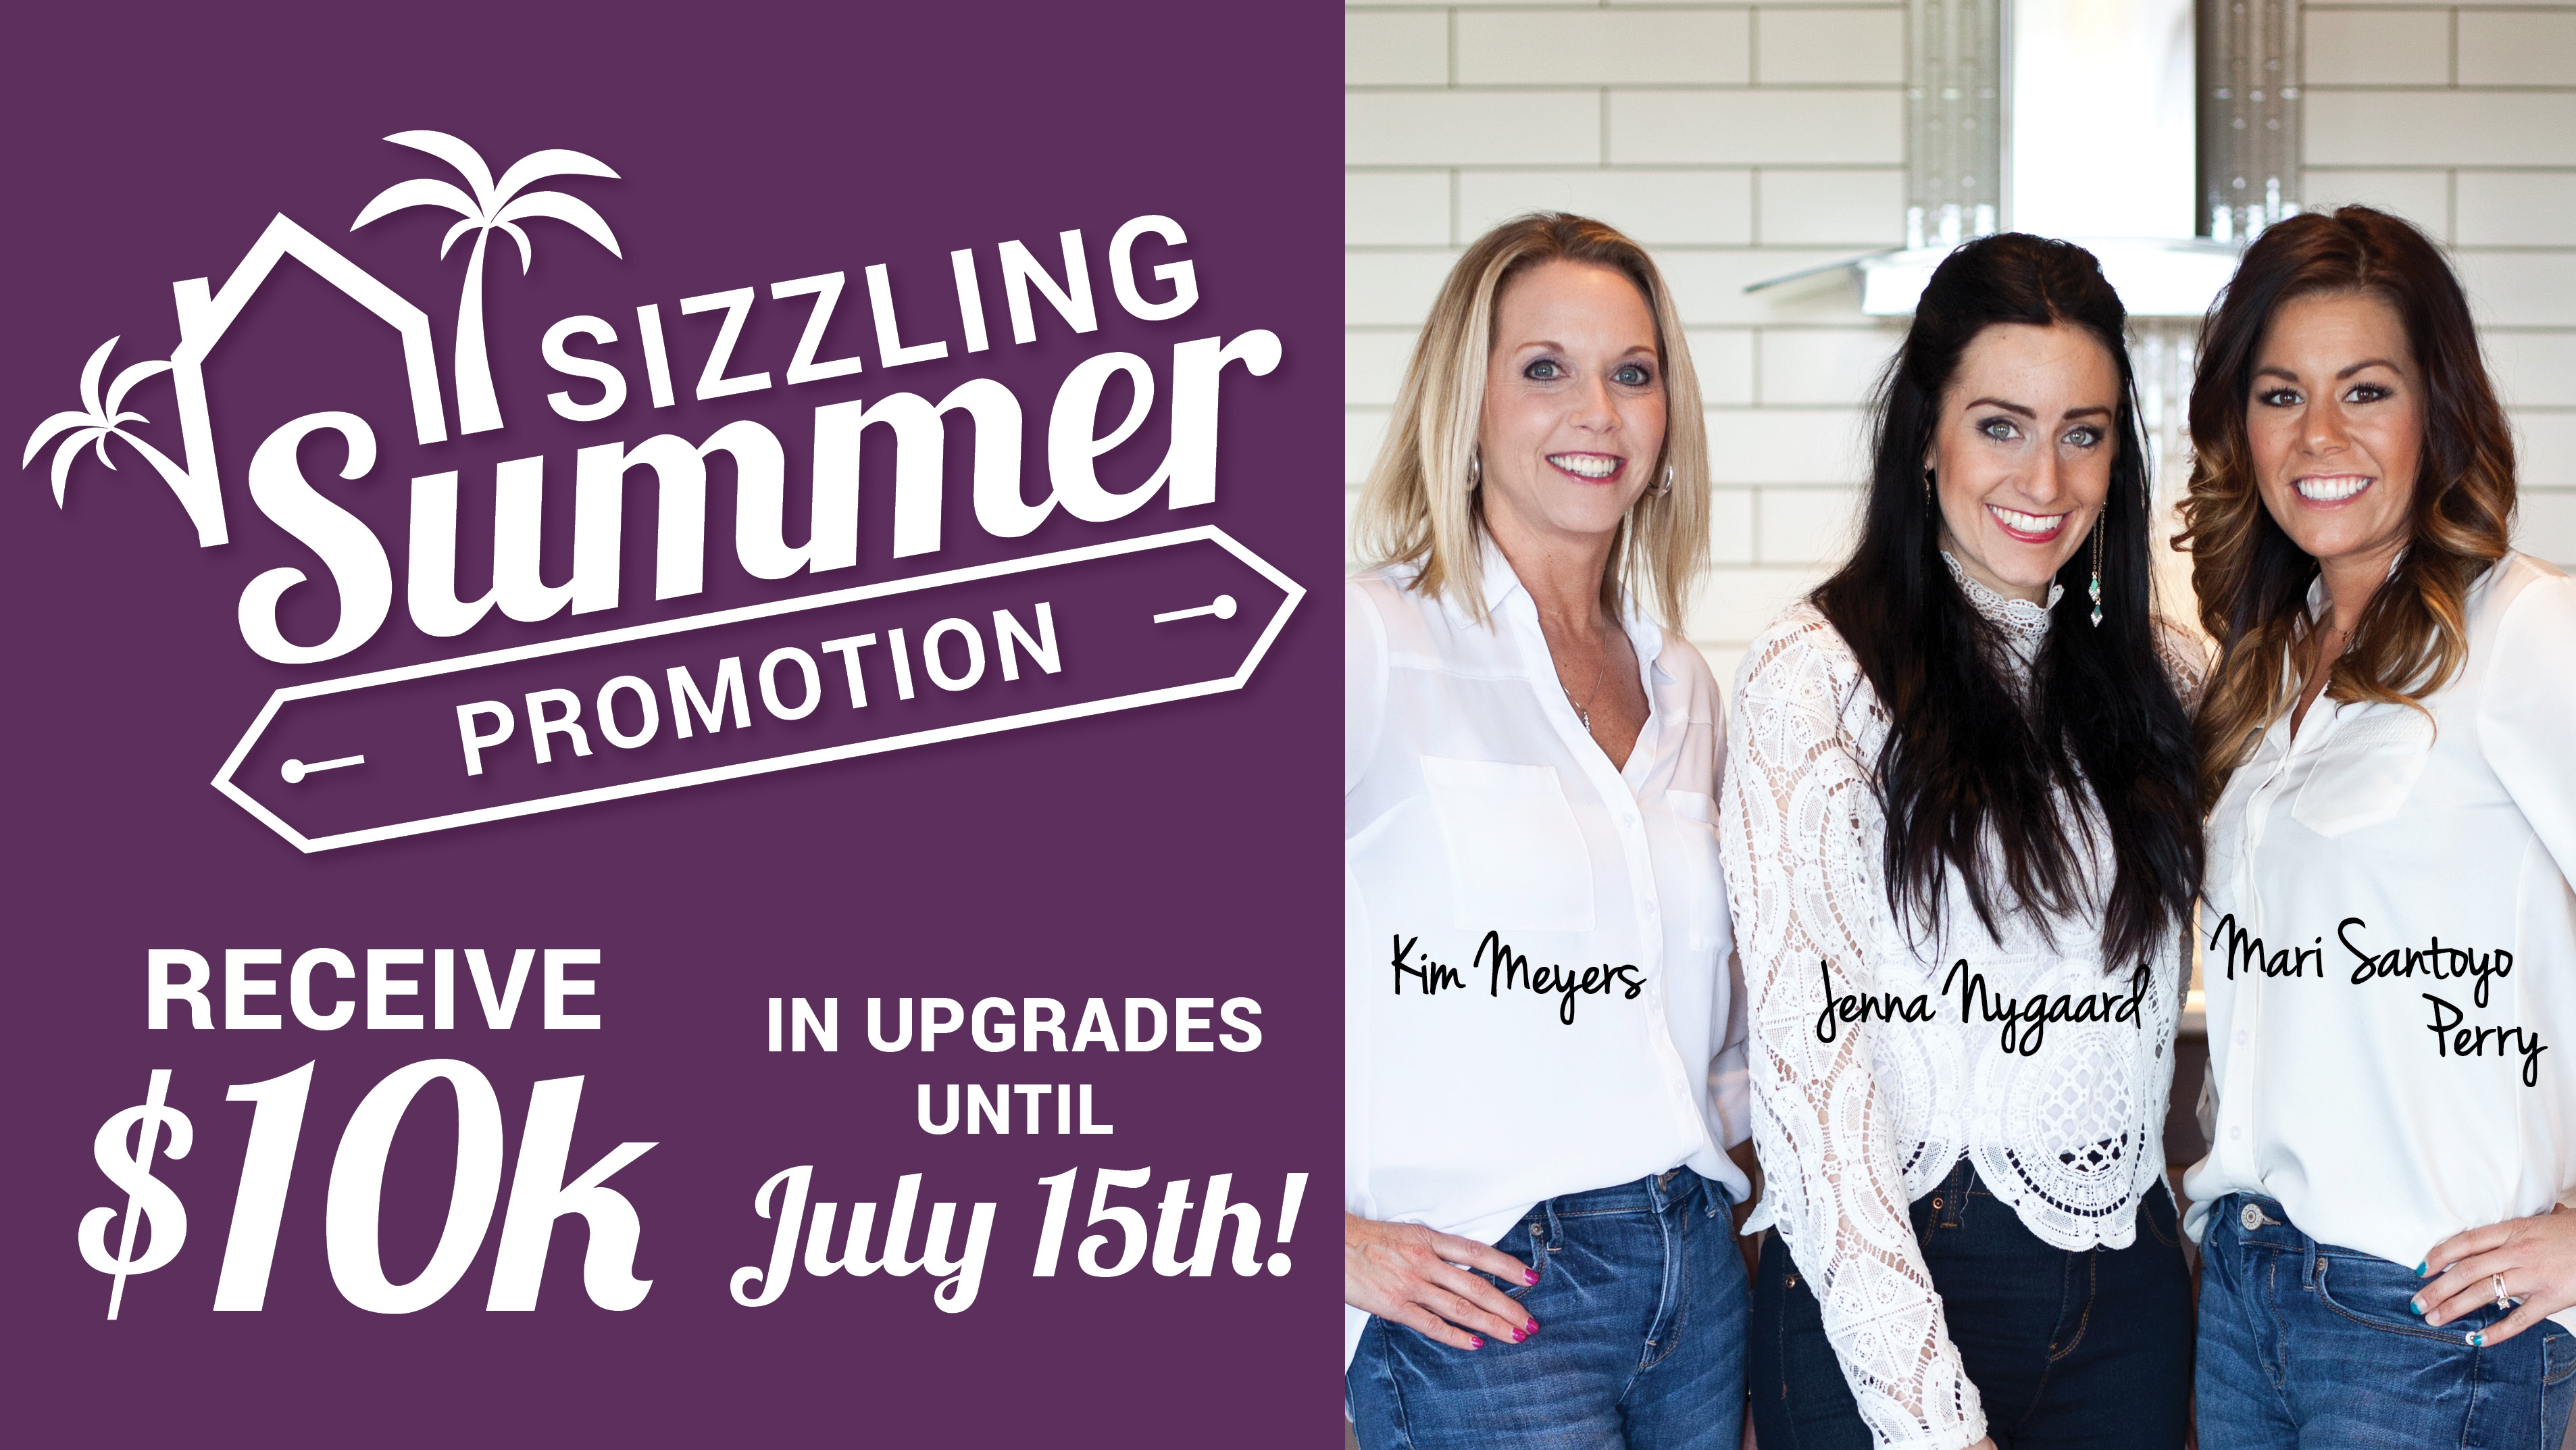 Sizzling Summer Promotion – Deal of the Summer!